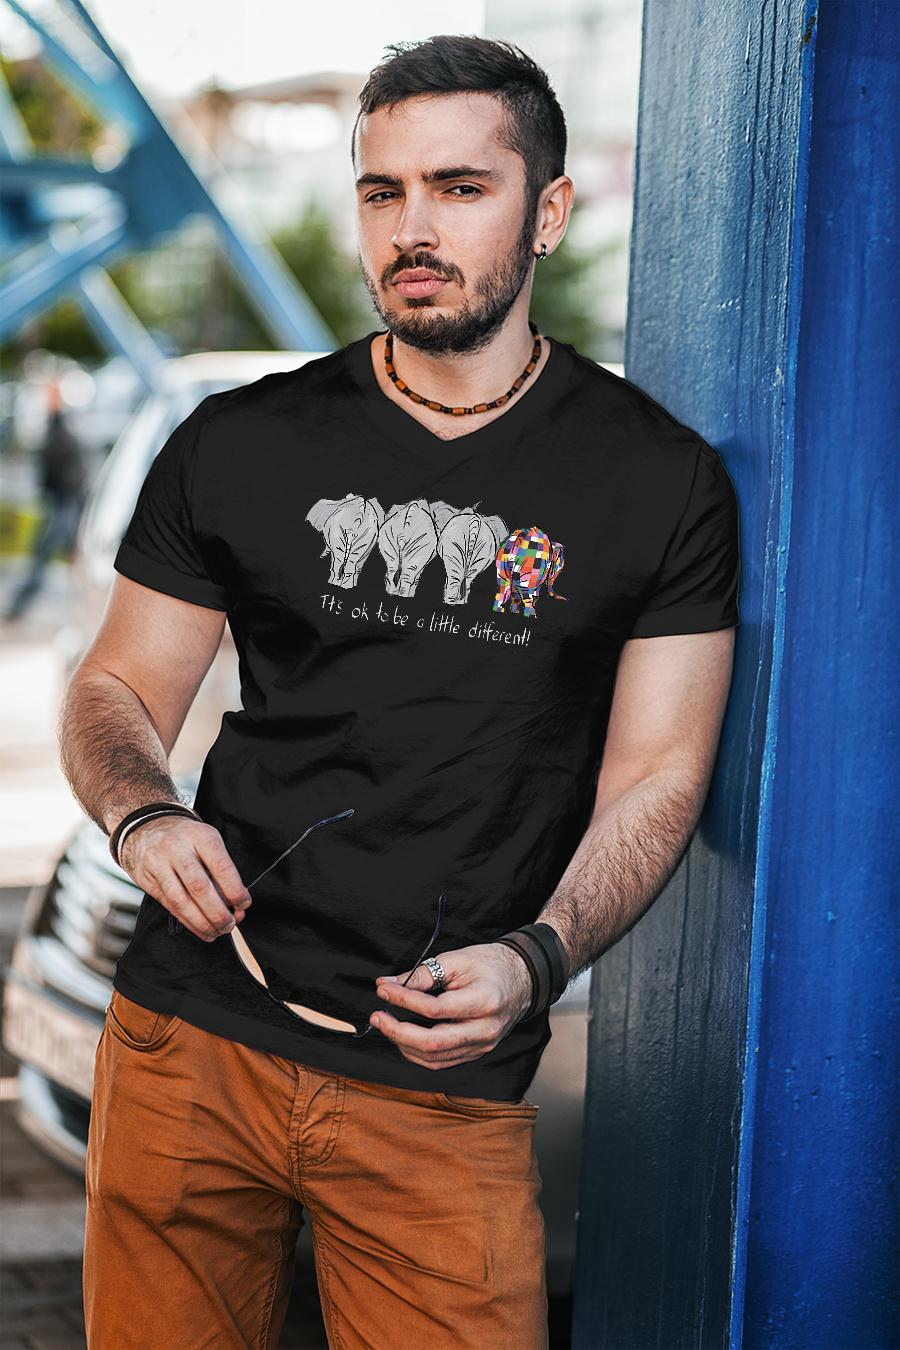 Elephant it's ok to be a little different shirt unisex